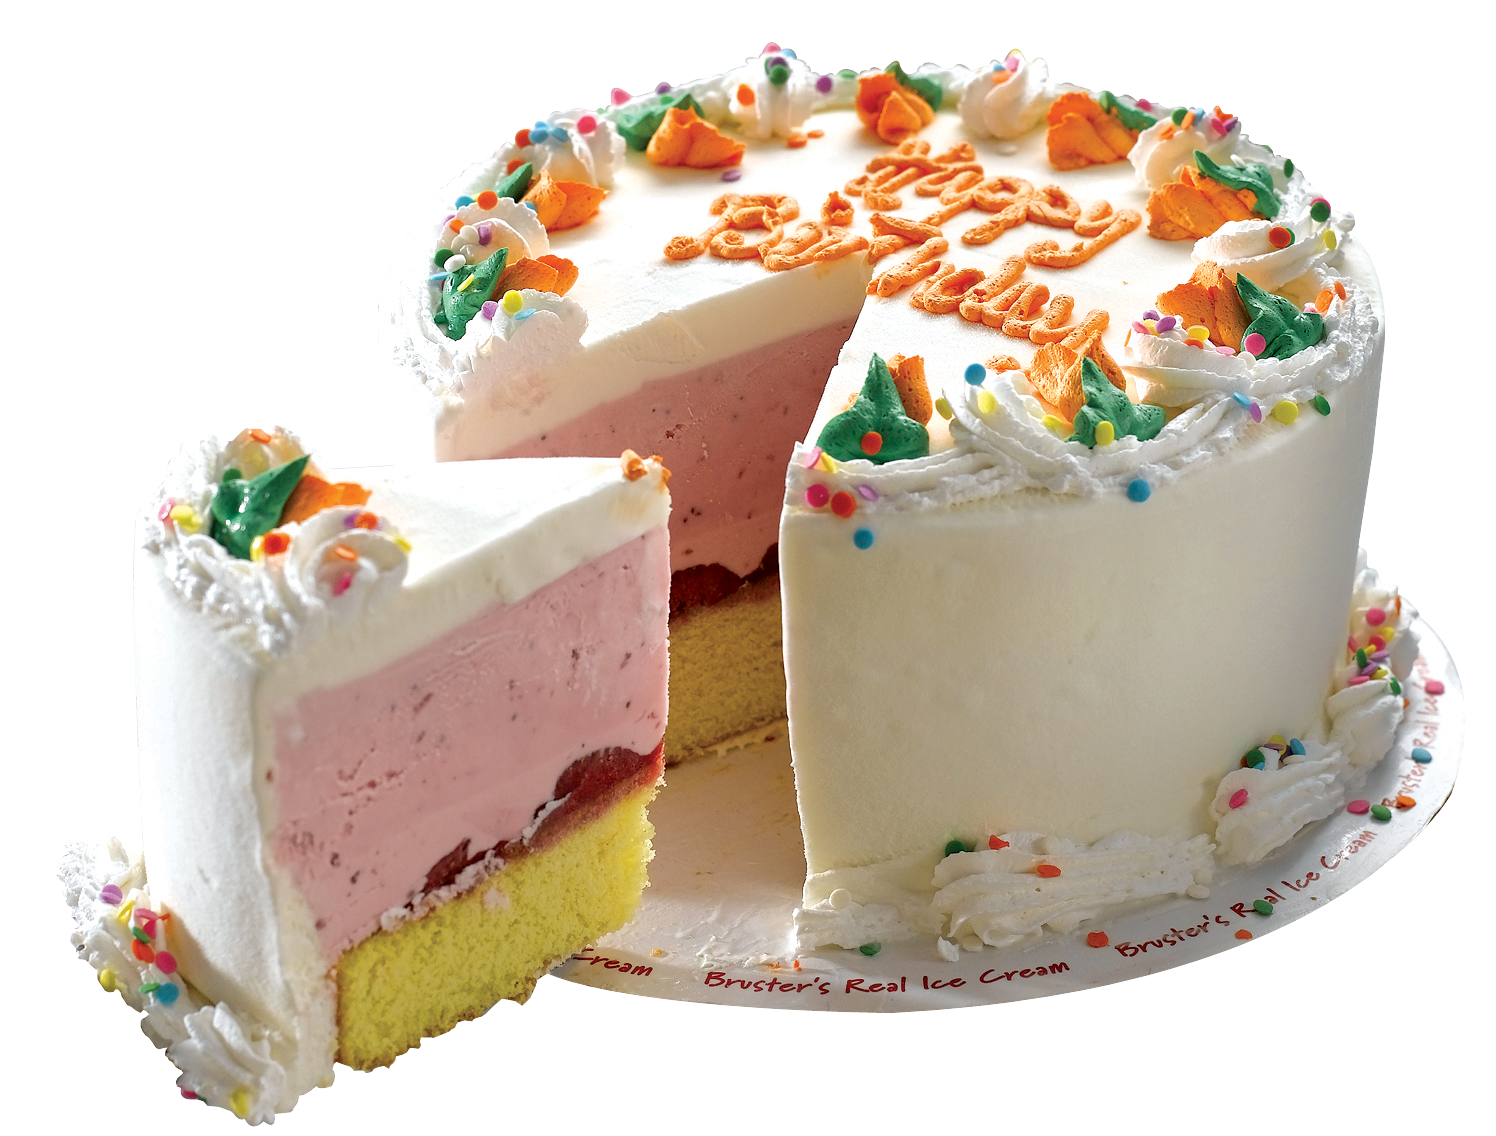 Cake Hd Png Transparent Cake Hdg Images Pluspng